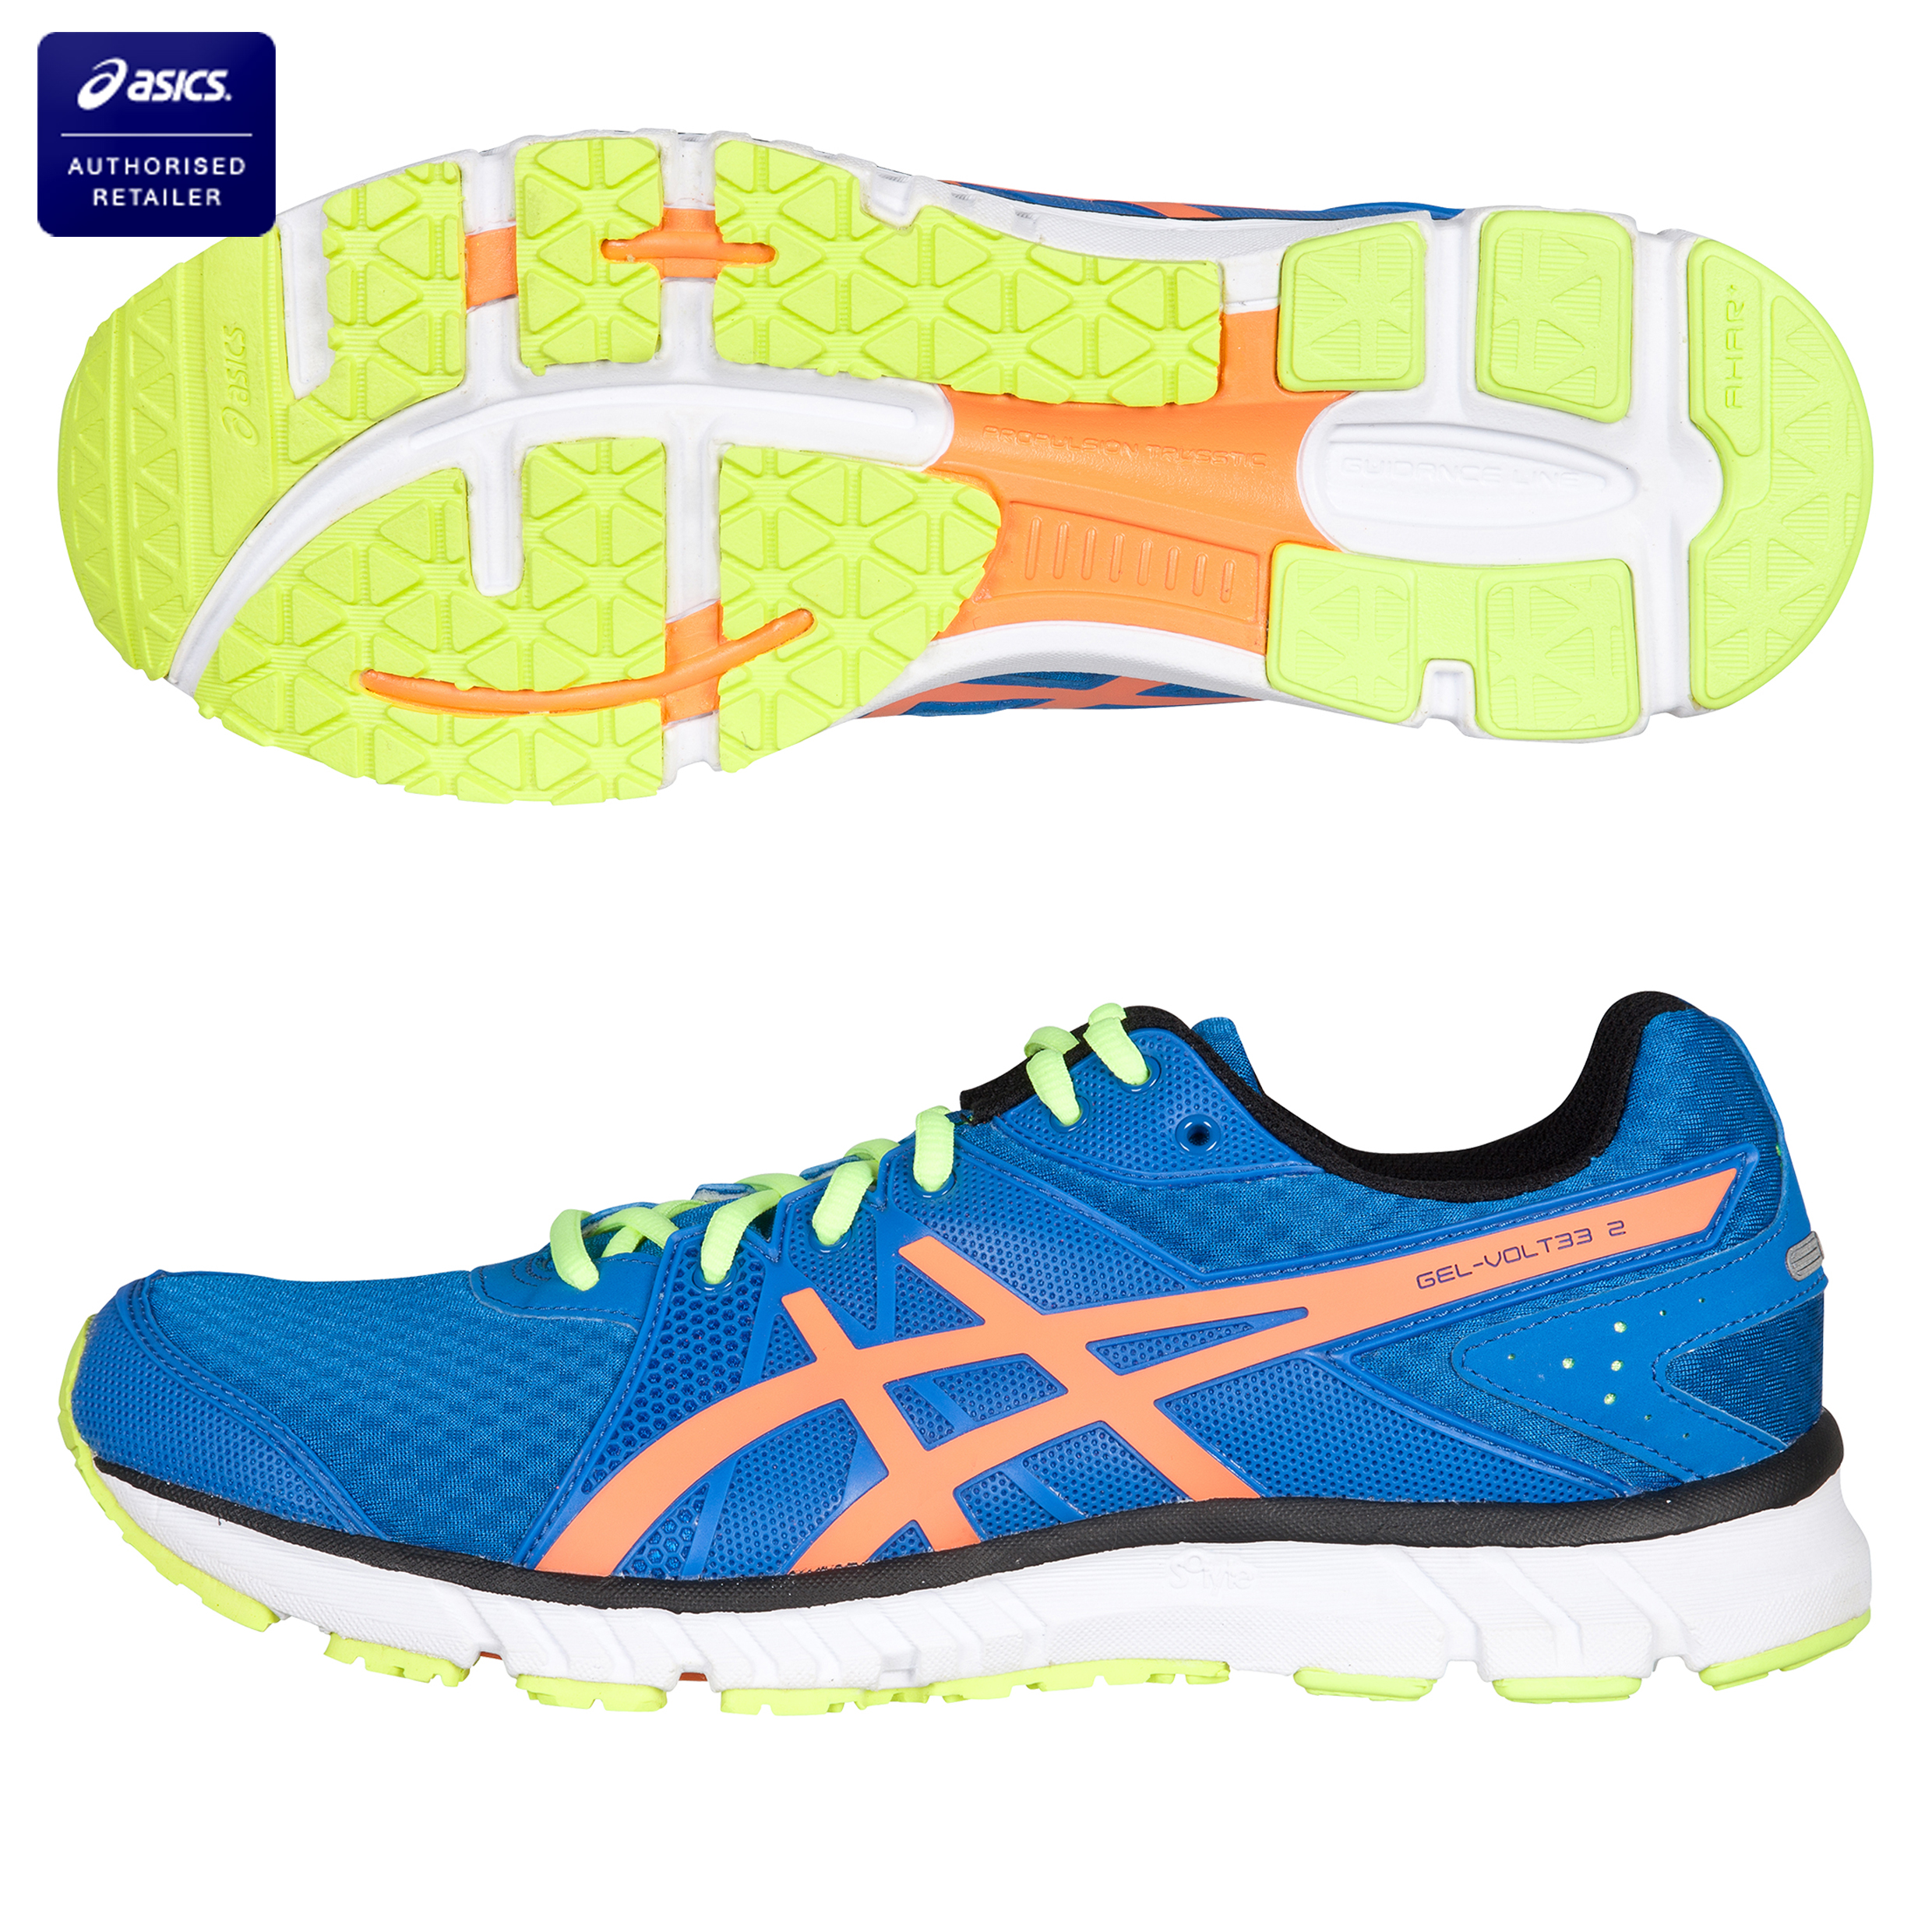 Asics Gel-Volt 33 2 Natural Running Trainers - Brilliant Blue/Neon Orange/Neon Yellow